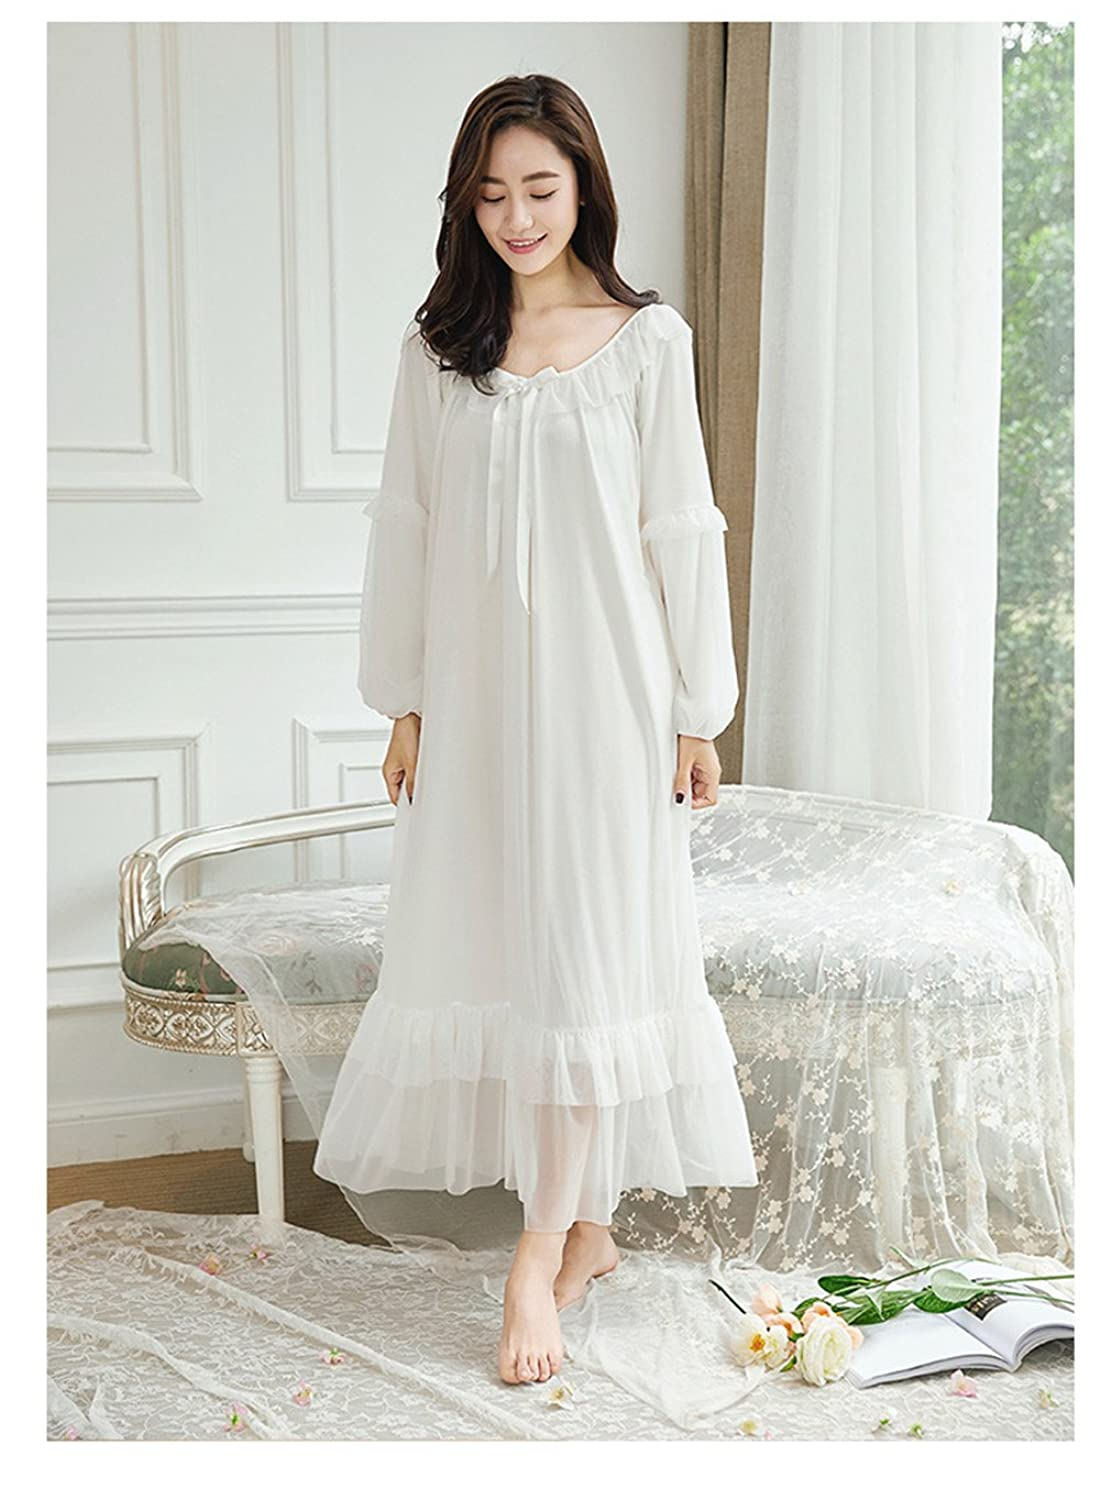 Looking for a smooth as silk fabric? Our popular nylon sleepwear section is filled with satiny Shadowline sleepwear and Miss Elaine Silk Essence gowns. Shadowline Silhouette and Petals nylon night gowns and nylon robes are light as air, easy to care for and come in a wide variety of beautiful colors.